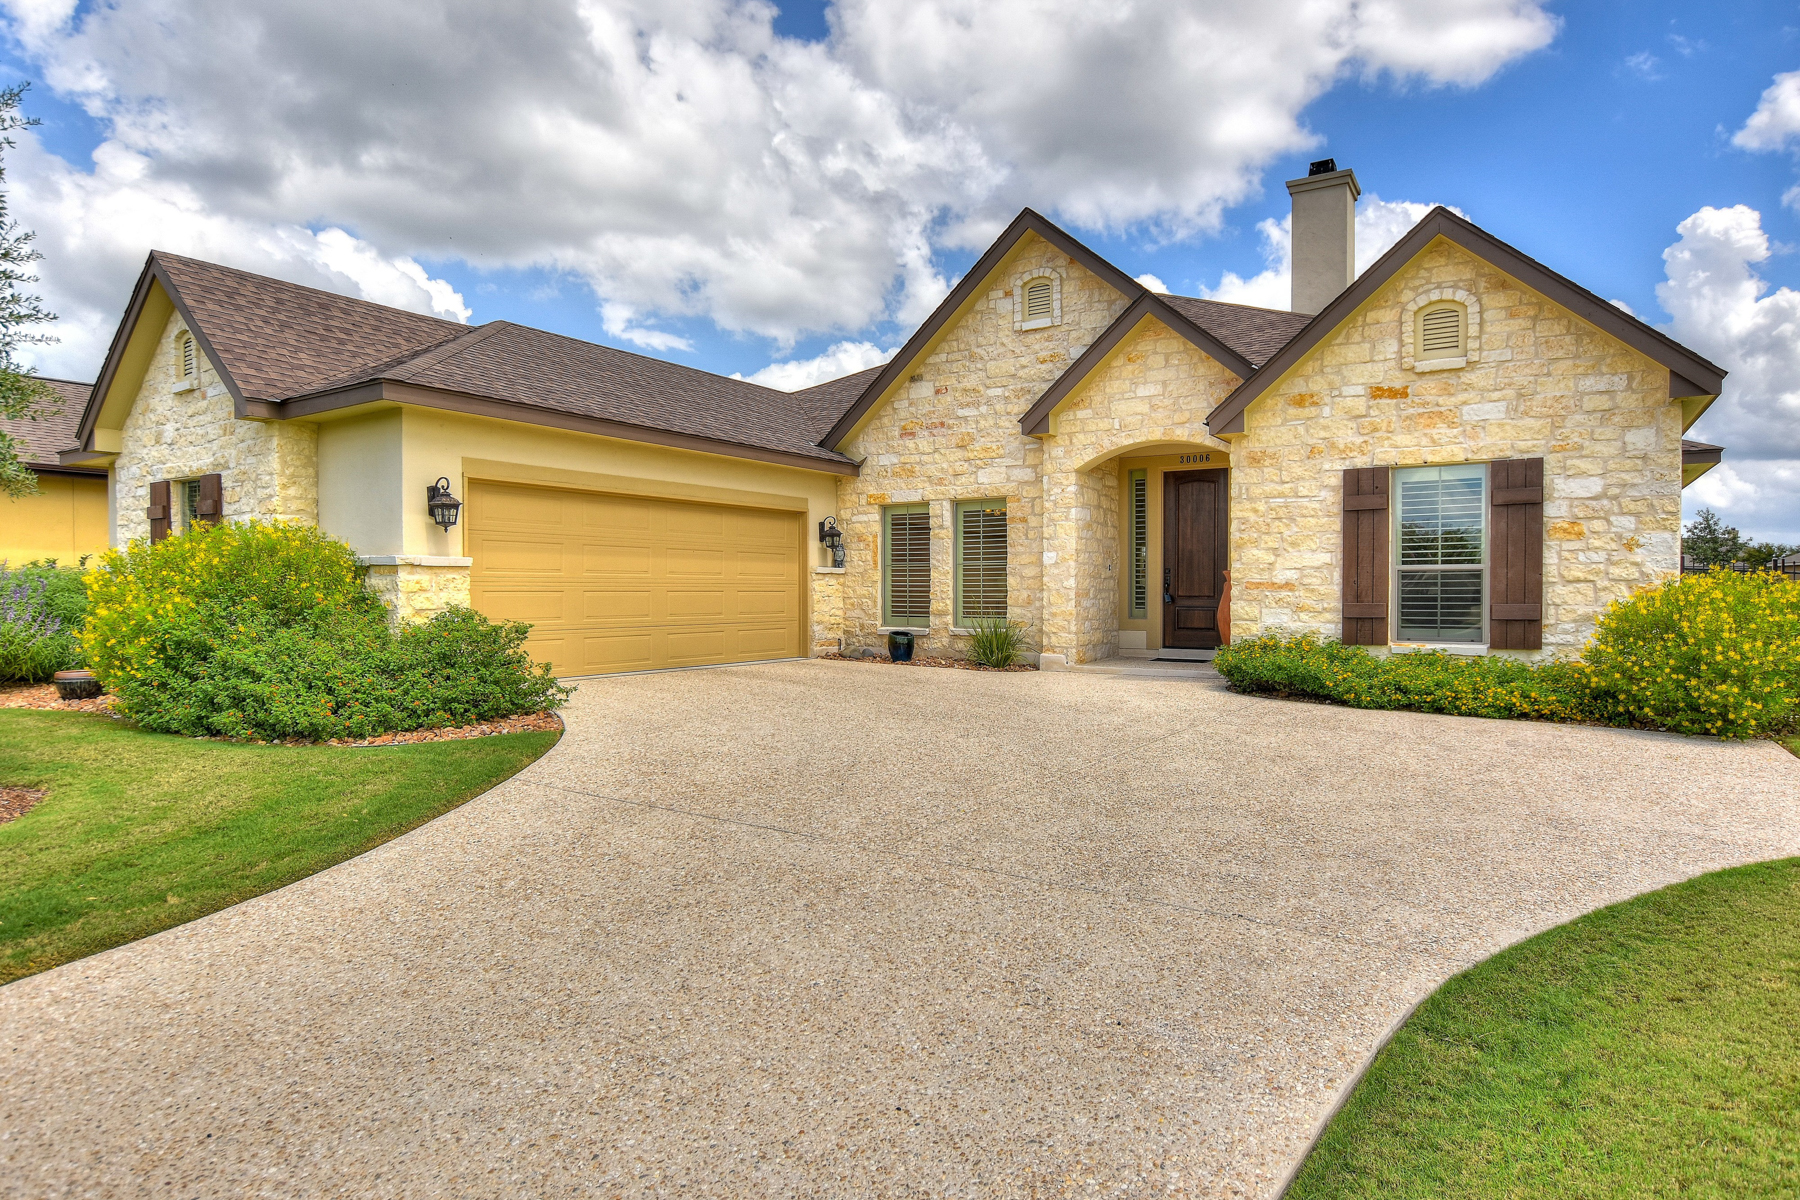 Single Family Home for Sale at Immaculate One-Story in Cibolo Trails 30006 Cibolo Trace Fair Oaks Ranch, Texas 78015 United States